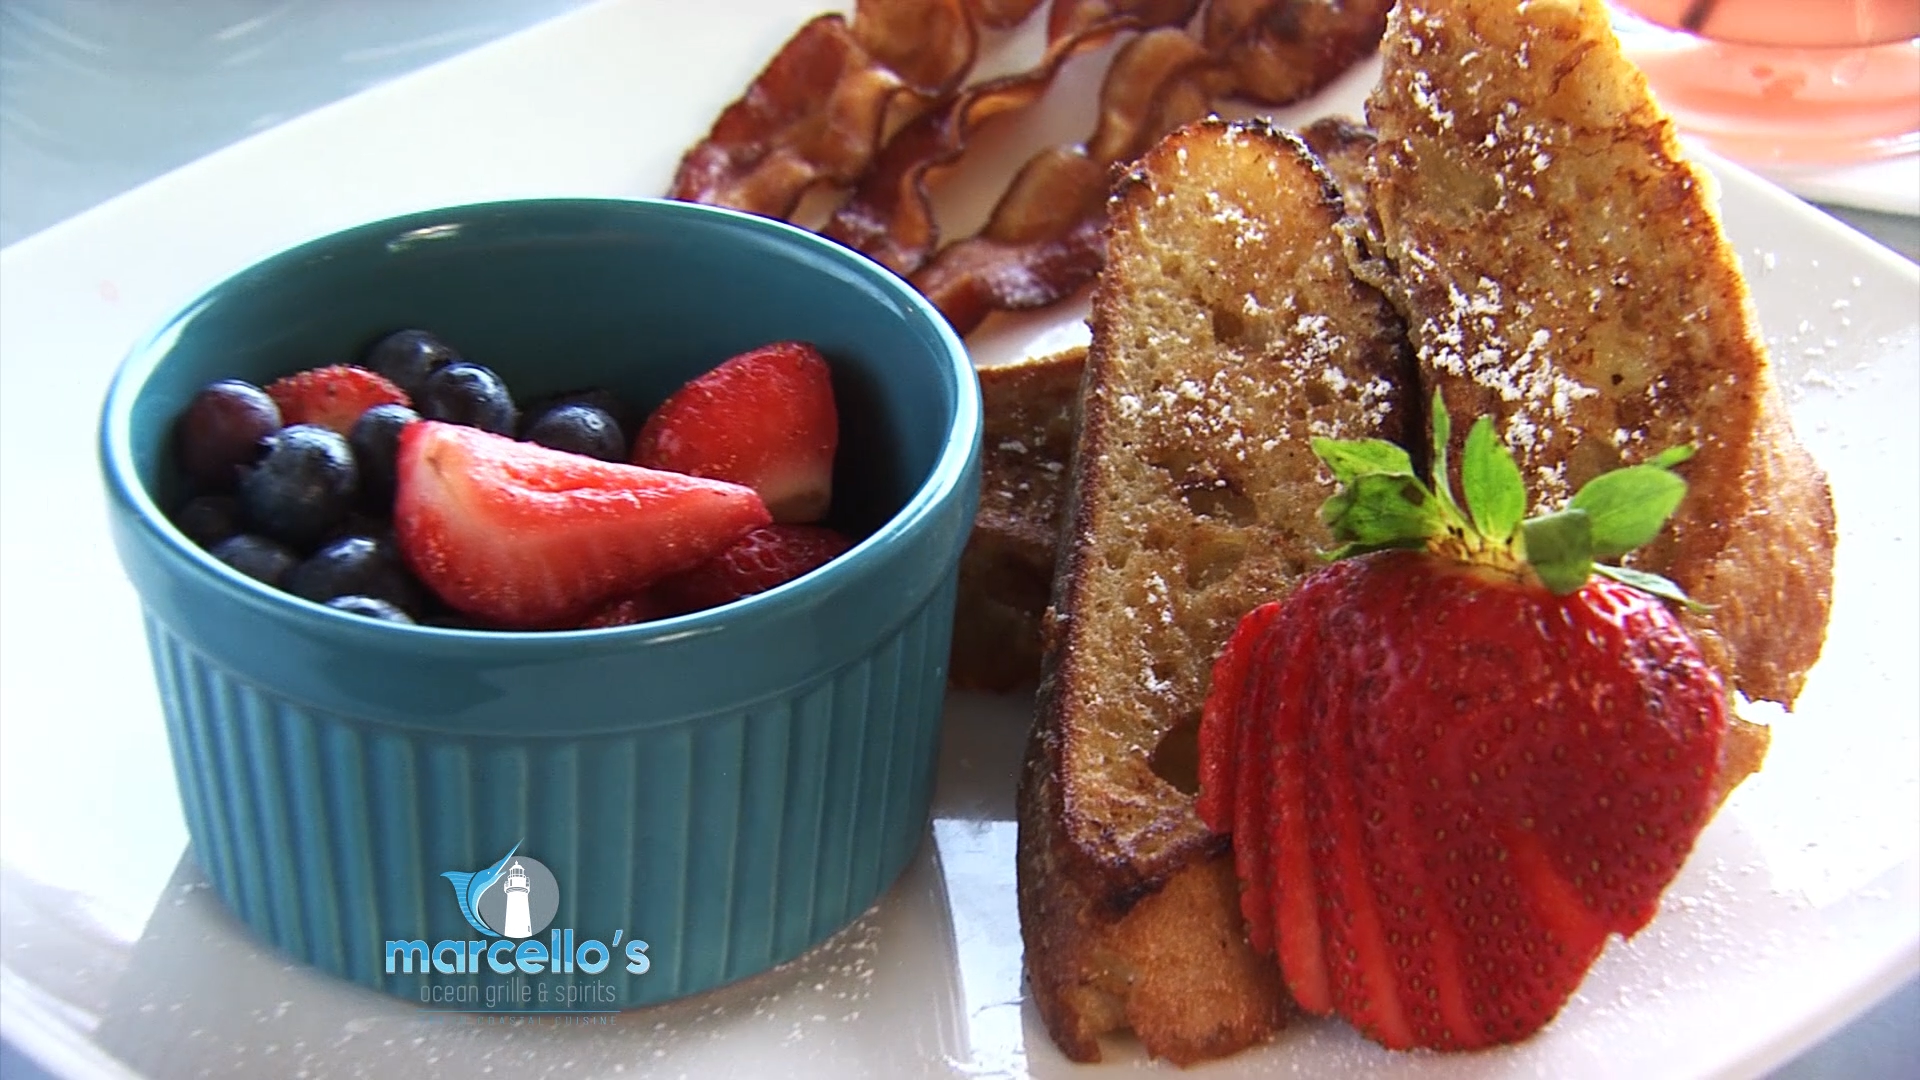 French toast with Bacon and Fruit Salad